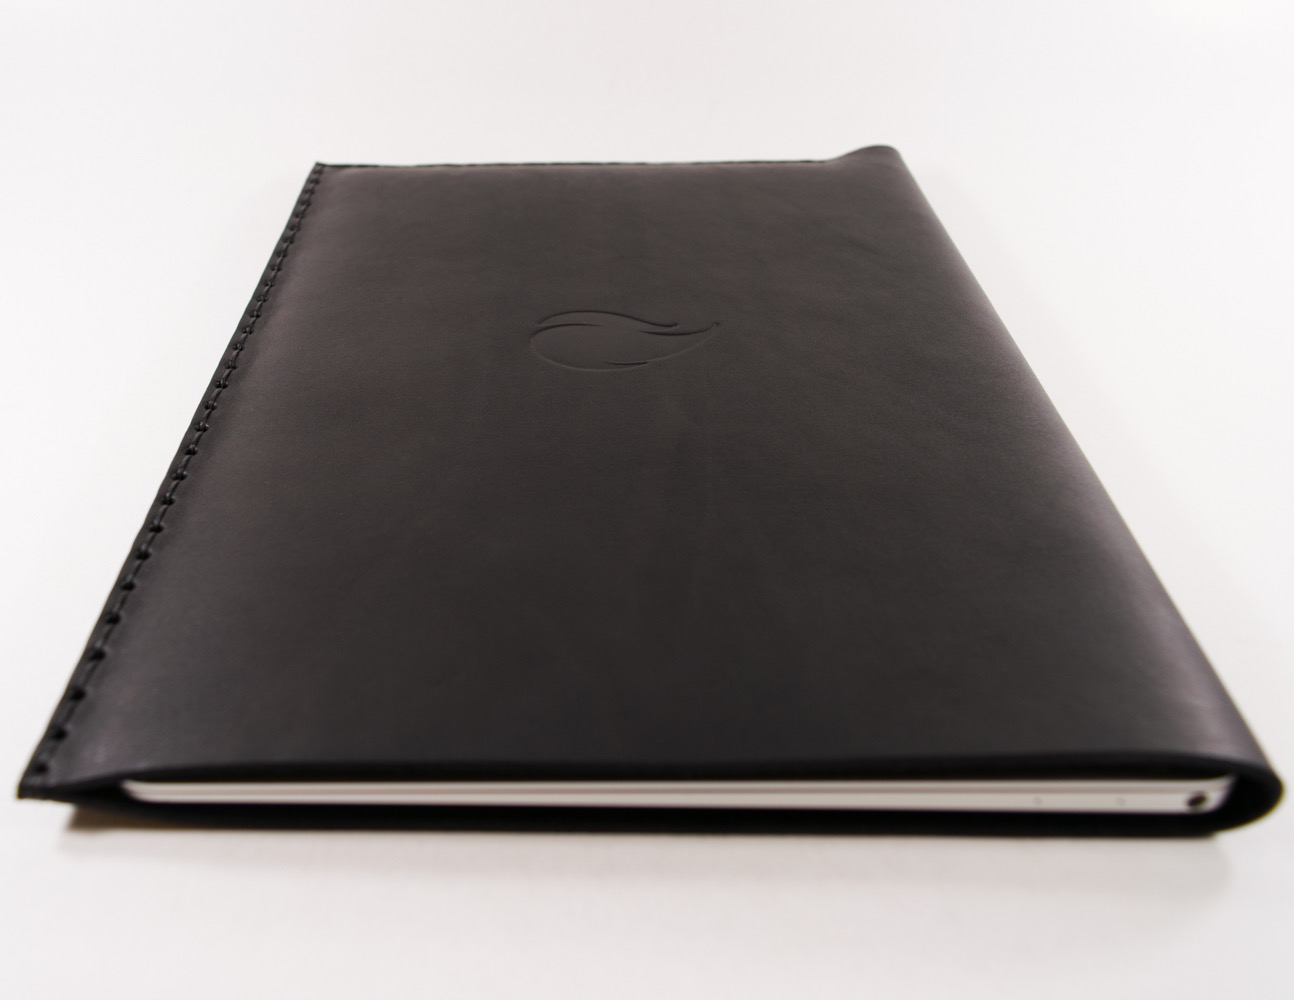 12-inch-macbook-black-thick-natural-leather-sleeve-case-straight-cut-by-firecult-1300-x-1000-4